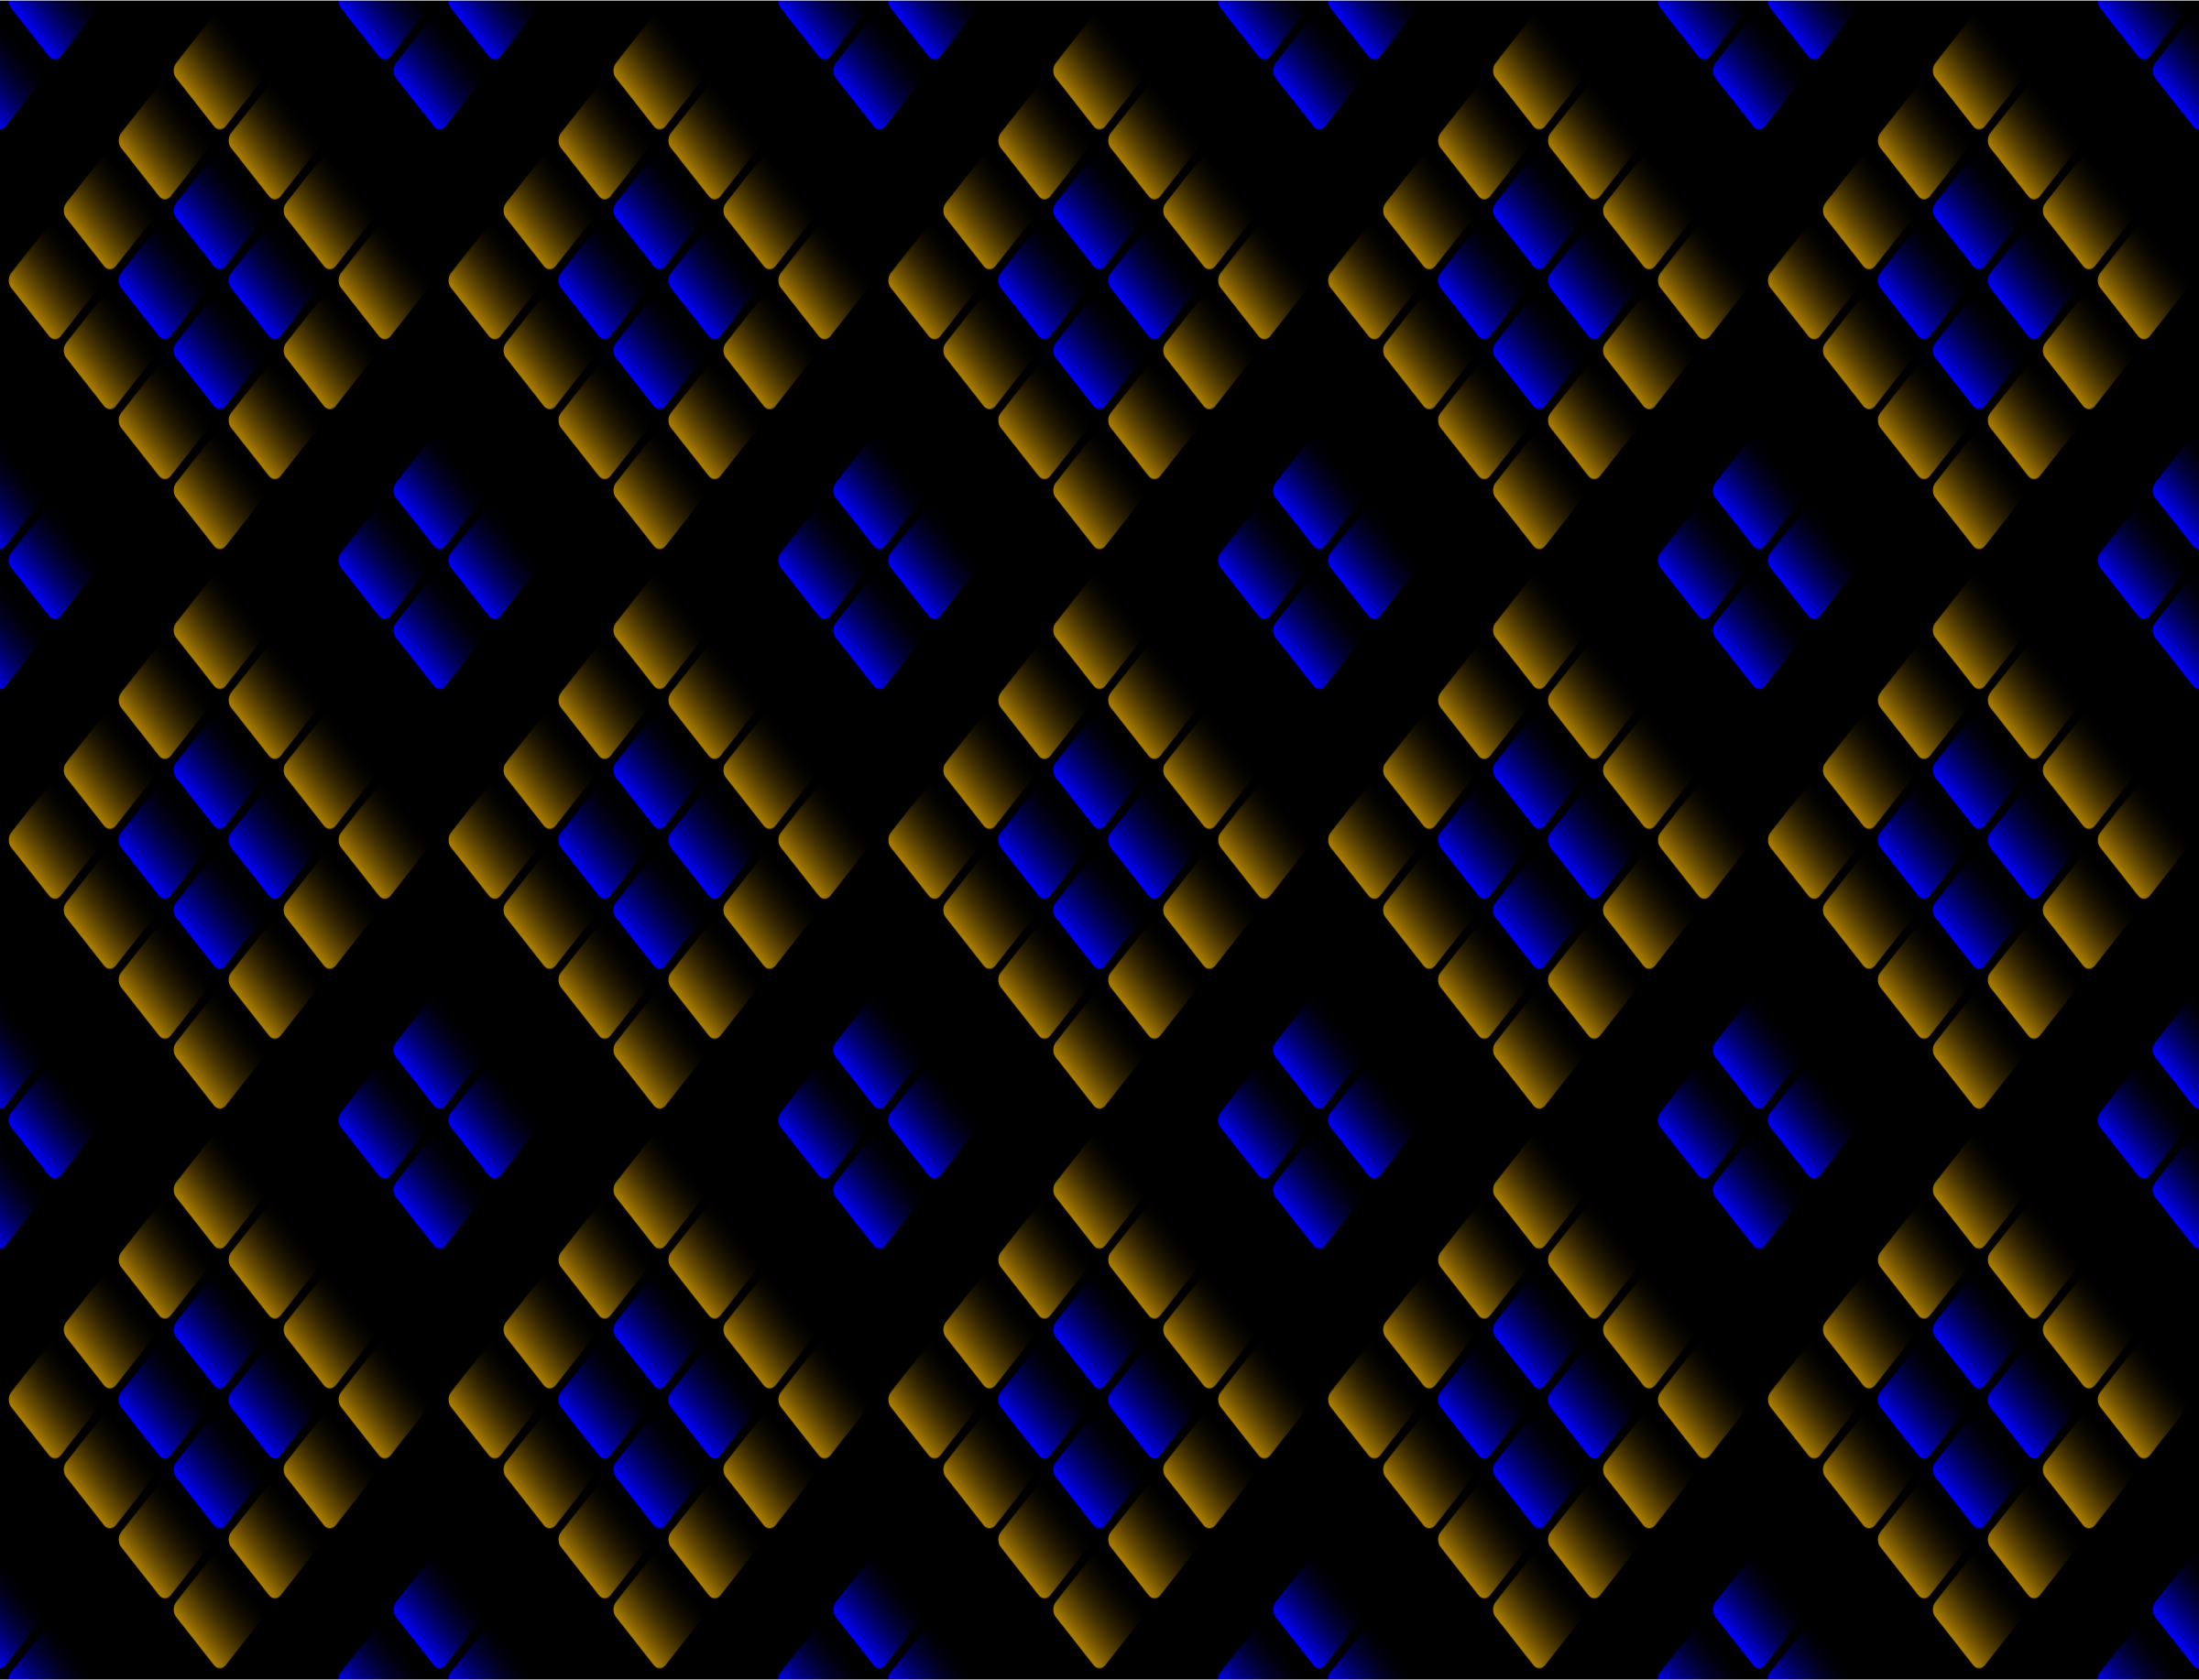 Diamond pattern 2 (colour 5) by Firkin